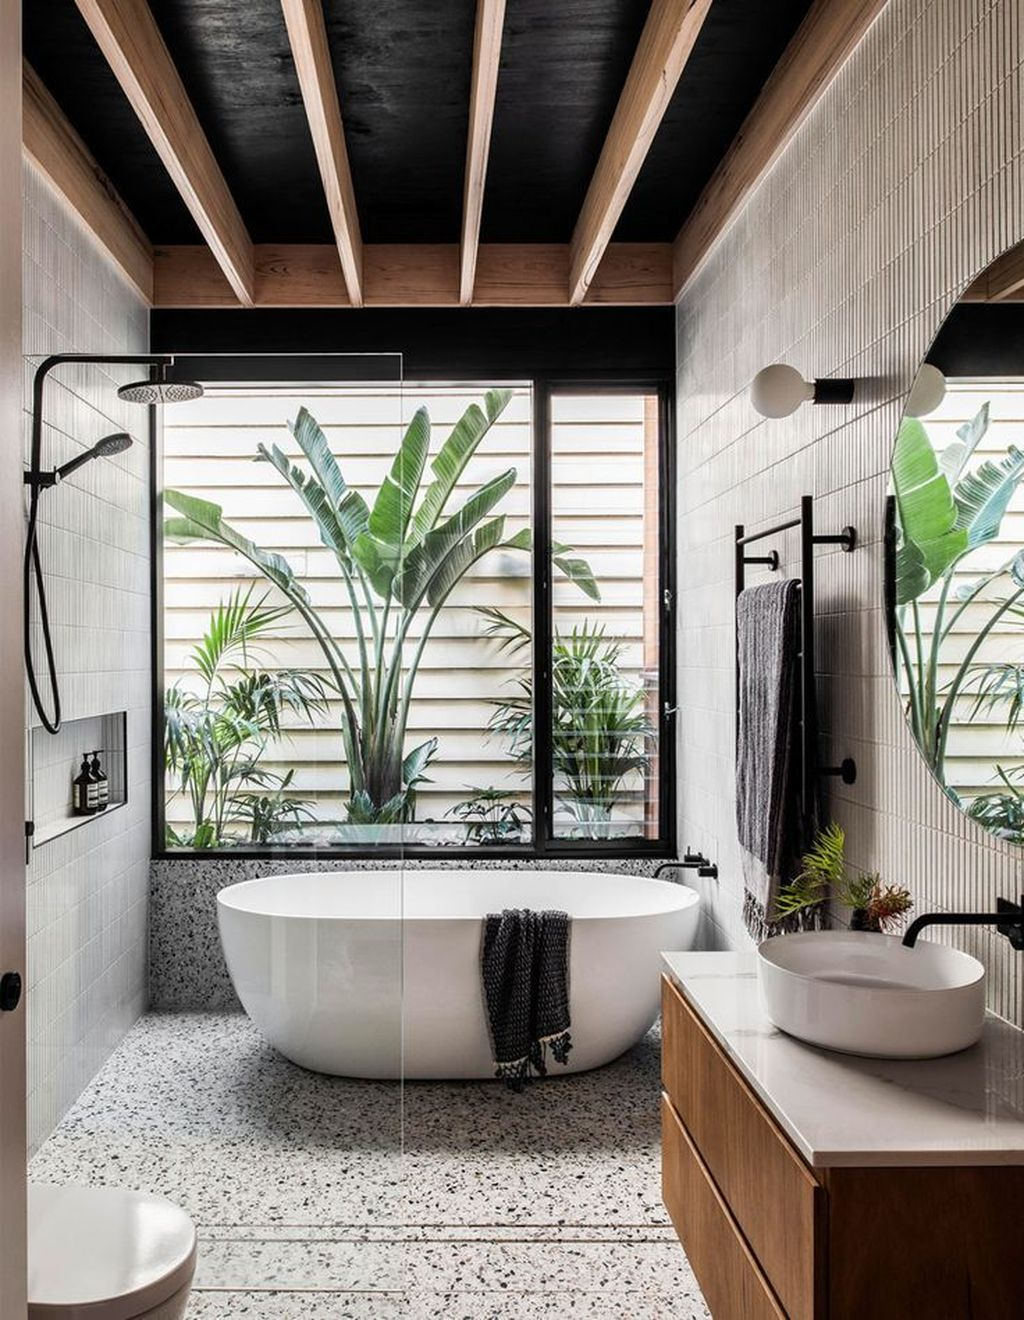 Inspiring Bathroom Interior Design Ideas 13